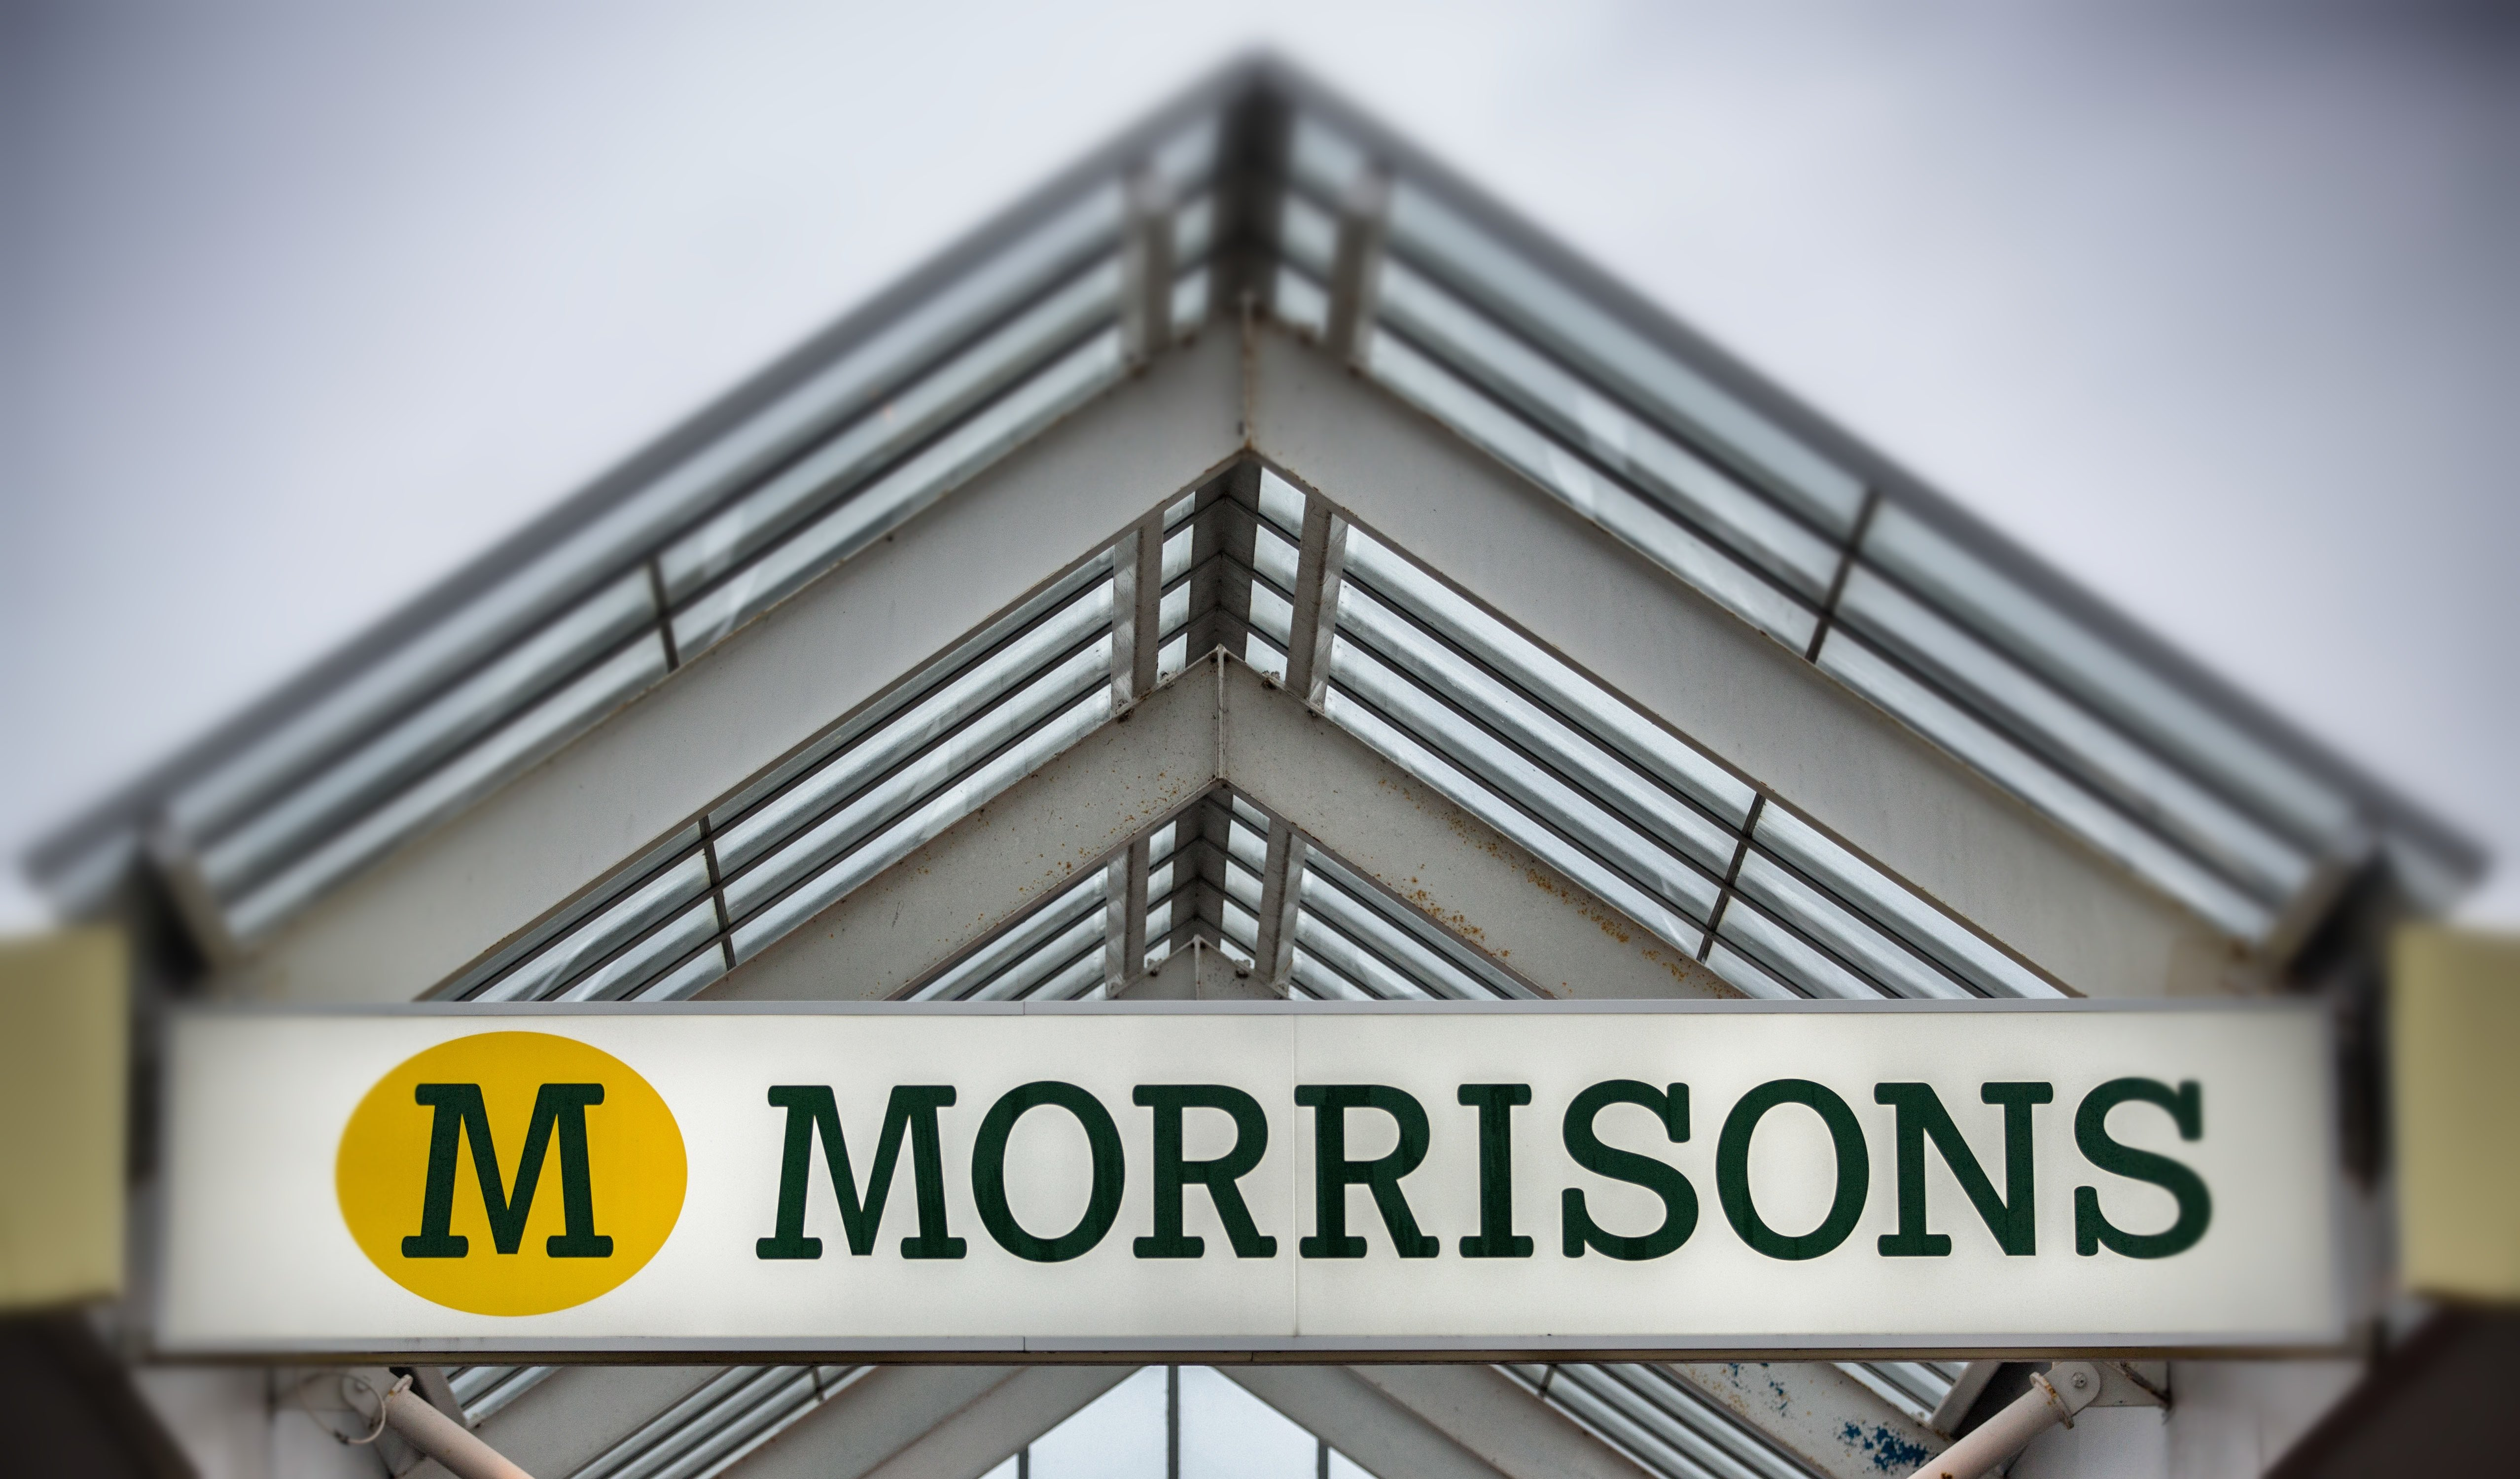 BRISTOL, ENGLAND - NOVEMBER 18: (EDITORS NOTE: This image was created using digital filters) The Morrisons sign is displayed outside a branch of the supermarket on November 18, 2015 in Bristol, England. As the crucial Christmas retail period approaches, all the major supermarkets are becoming increasingly competitive to retain and increase their share of the market. (Photo by Matt Cardy/Getty Images)